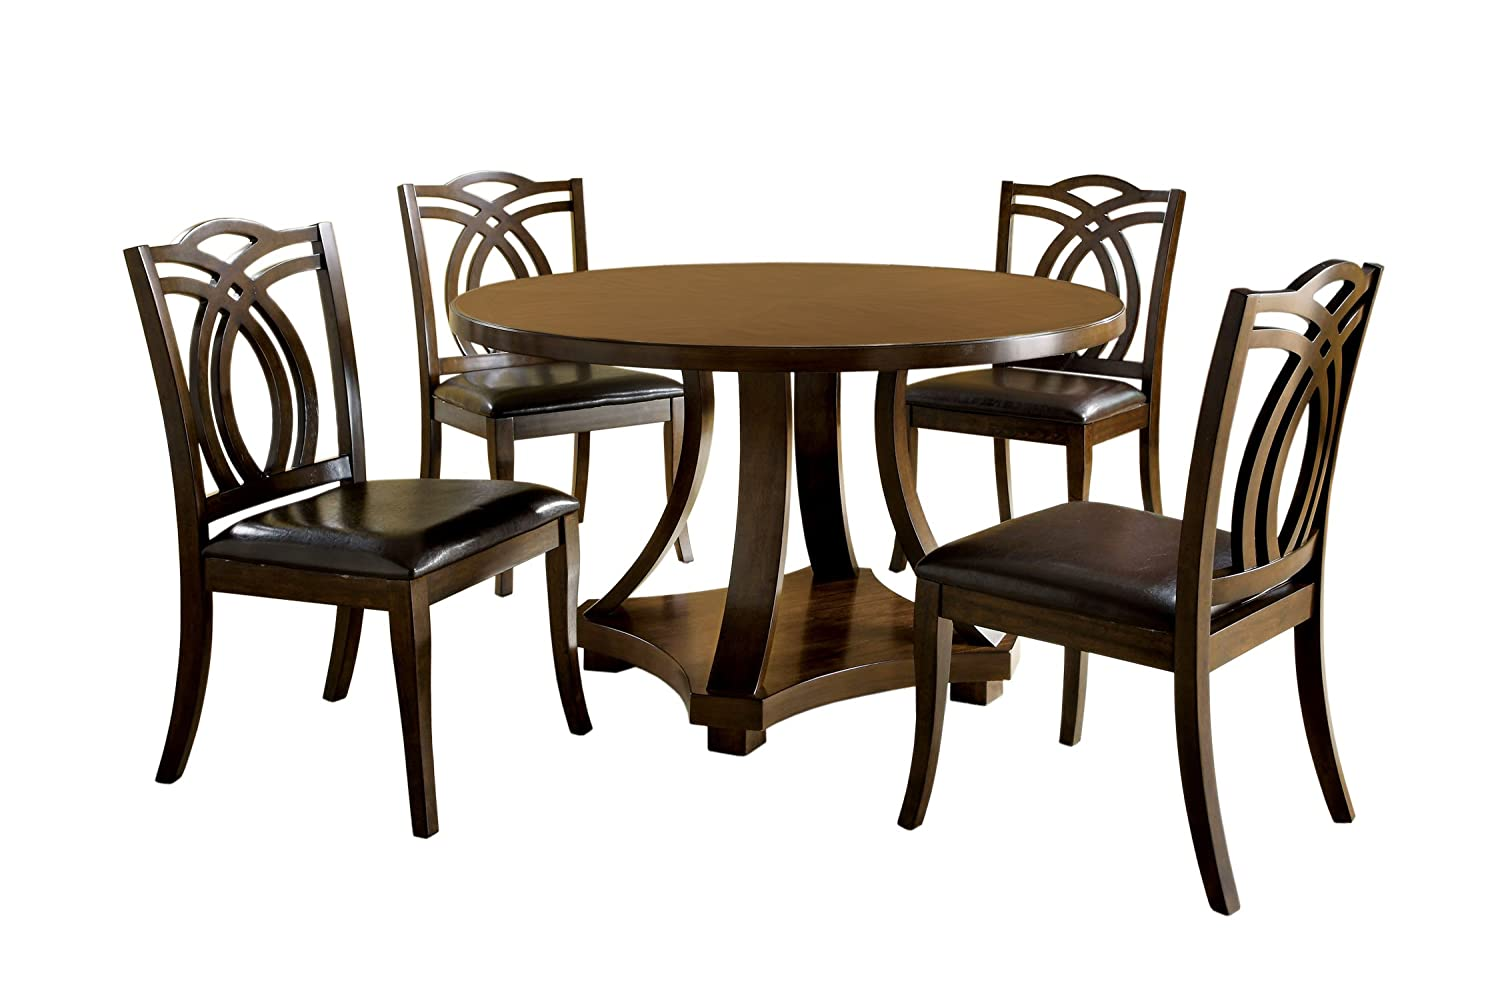 Amazon.com - Furniture of America Fluxeur 5-Piece Round Dining Table Set Dark Walnut - Table u0026 Chair Sets  sc 1 st  Amazon.com & Amazon.com - Furniture of America Fluxeur 5-Piece Round Dining Table ...